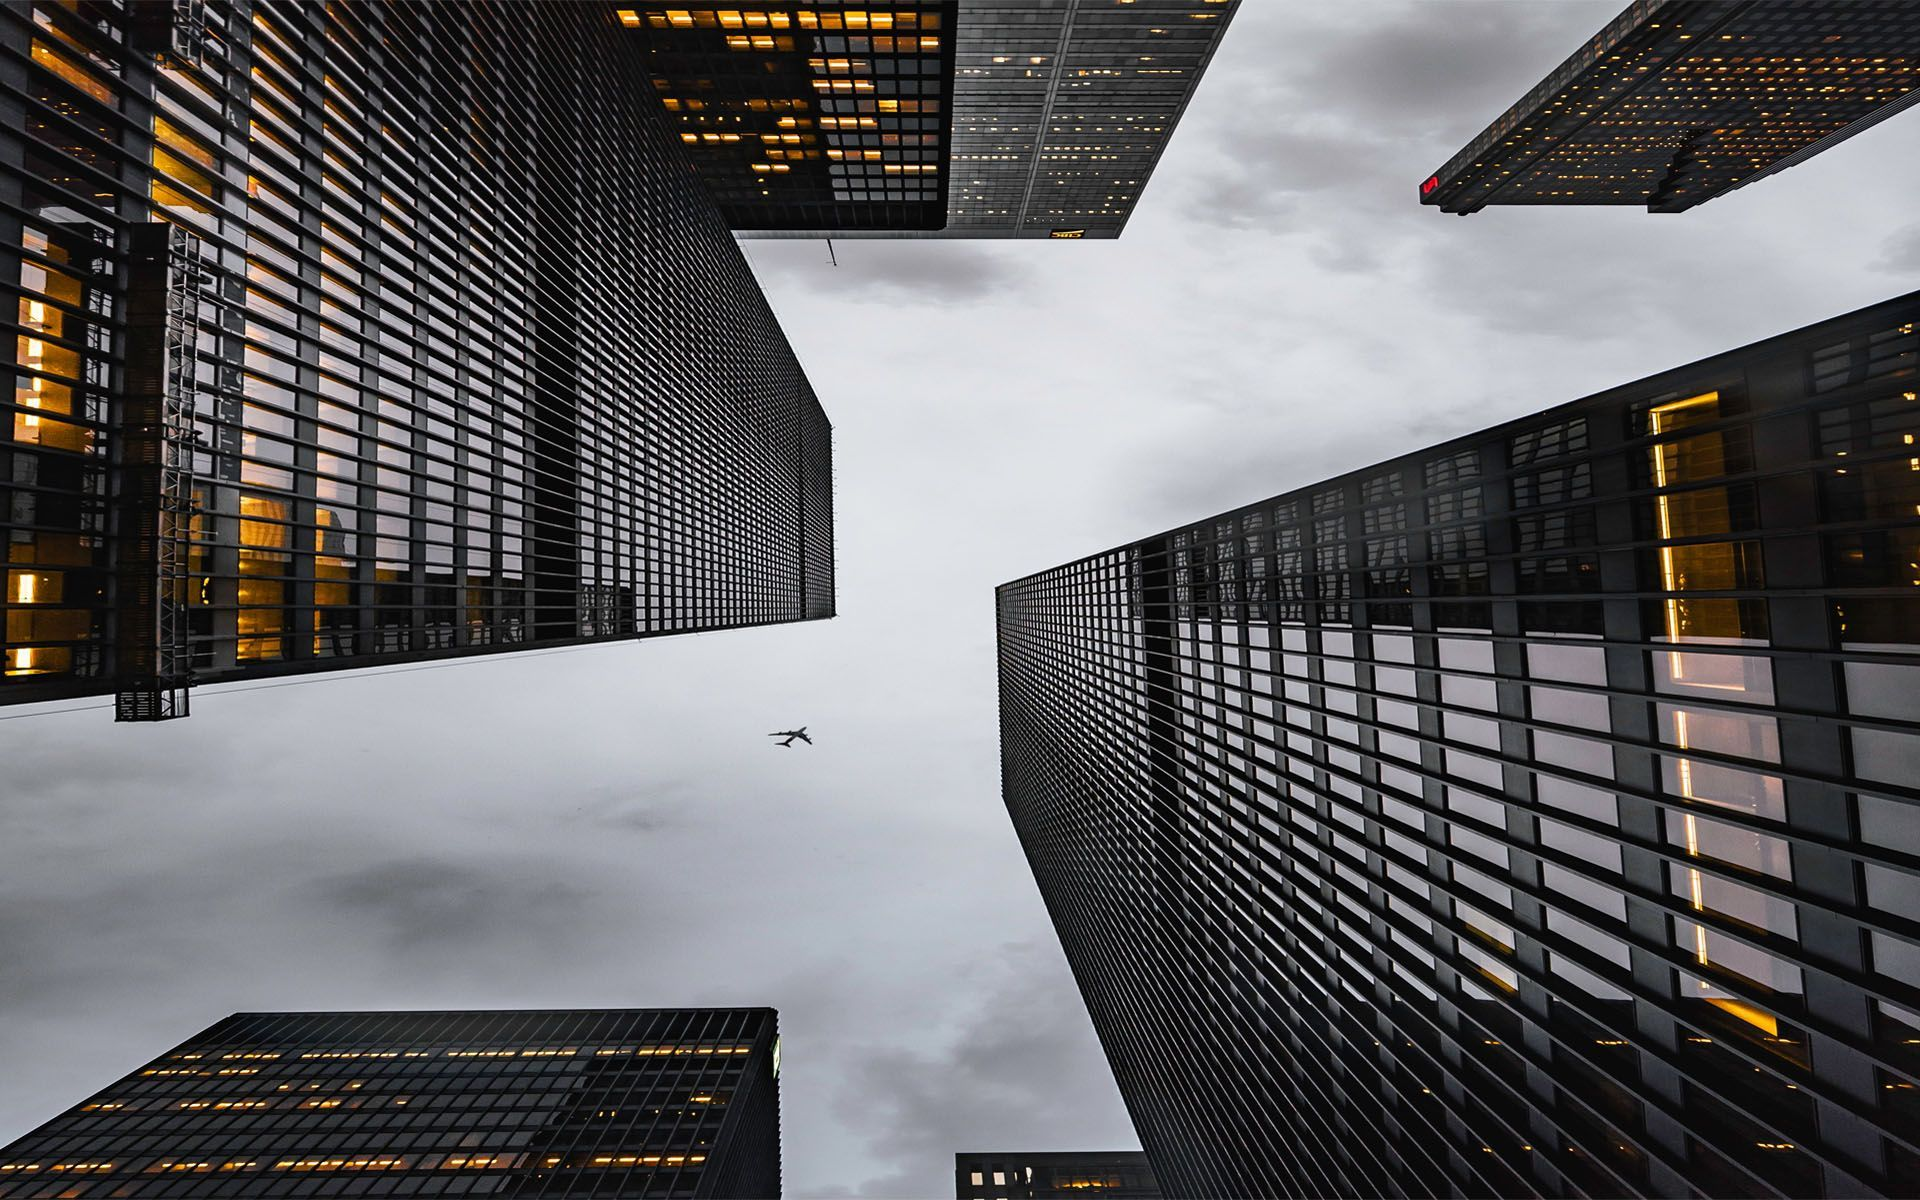 Looking Up City Wallpapers On Wallpaperdog